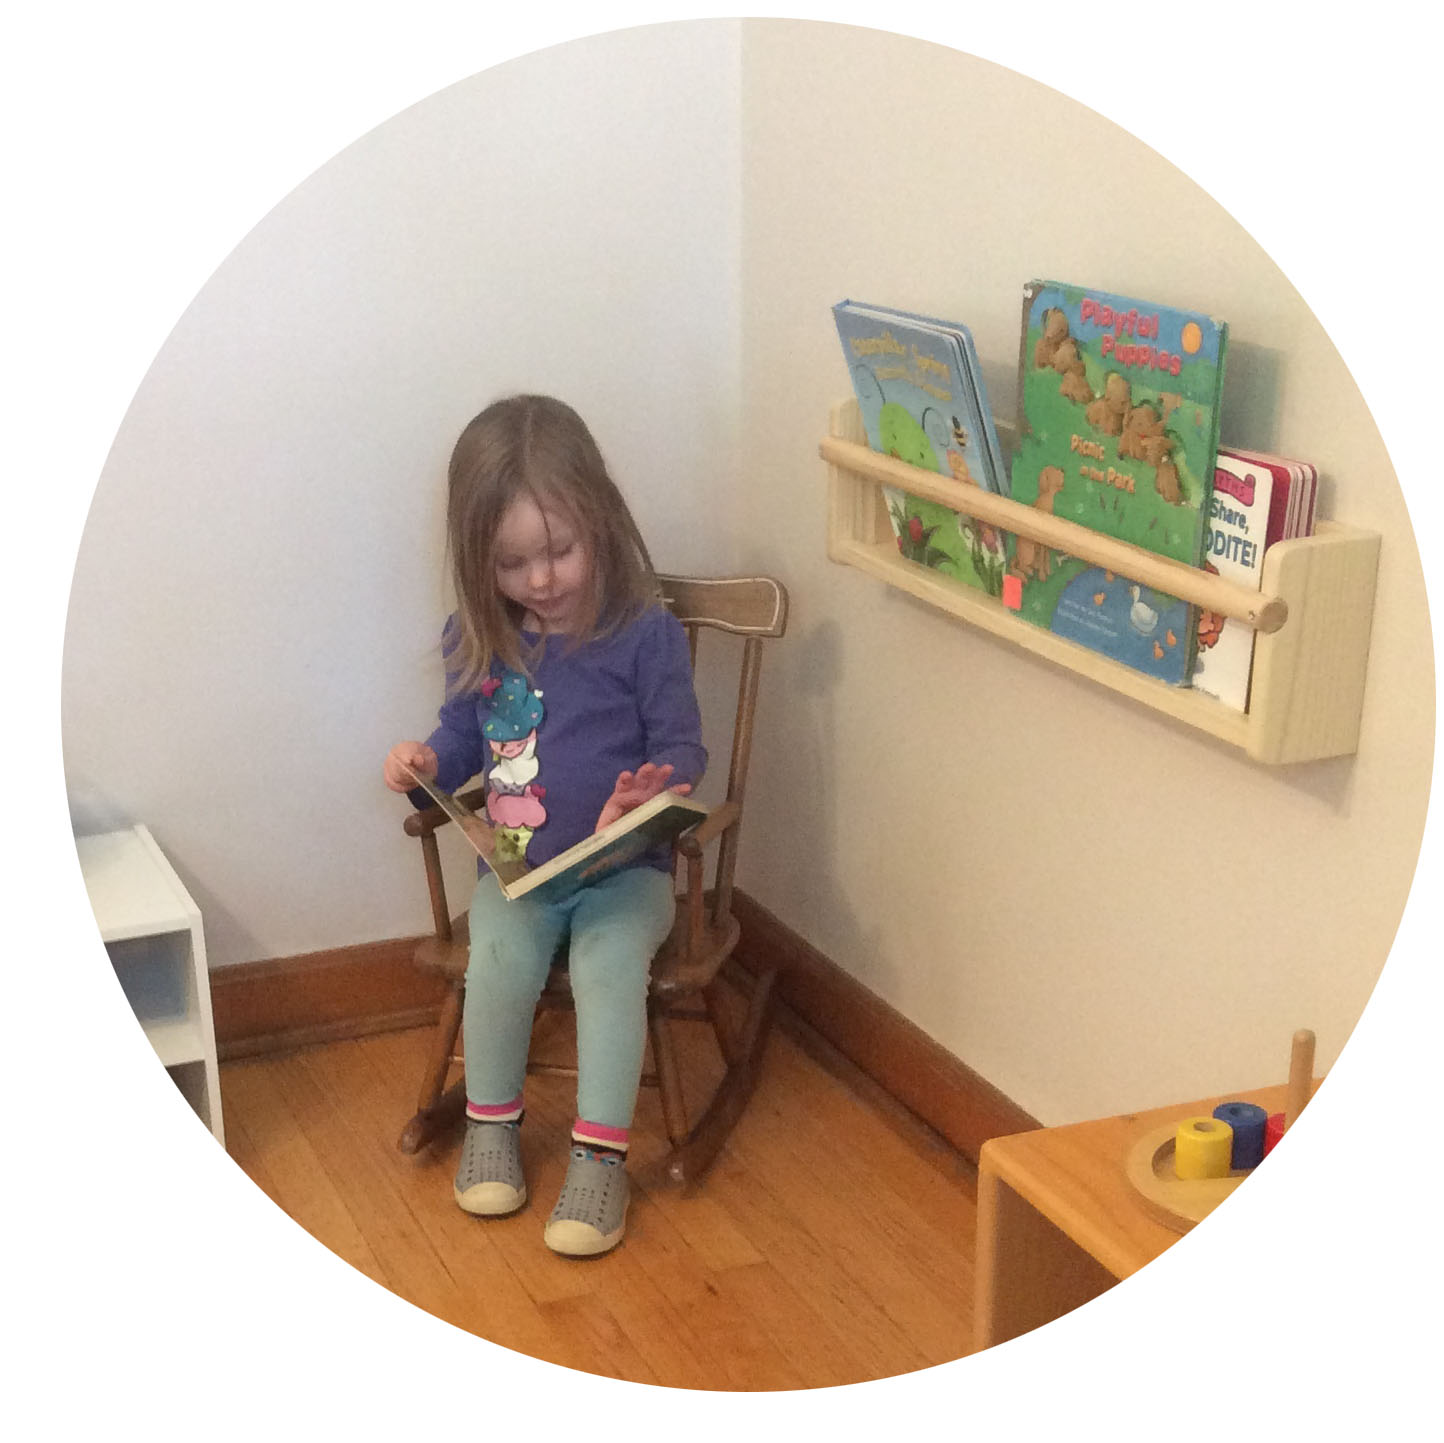 Children always have access to a rotating selection of engaging, age-appropriate books.